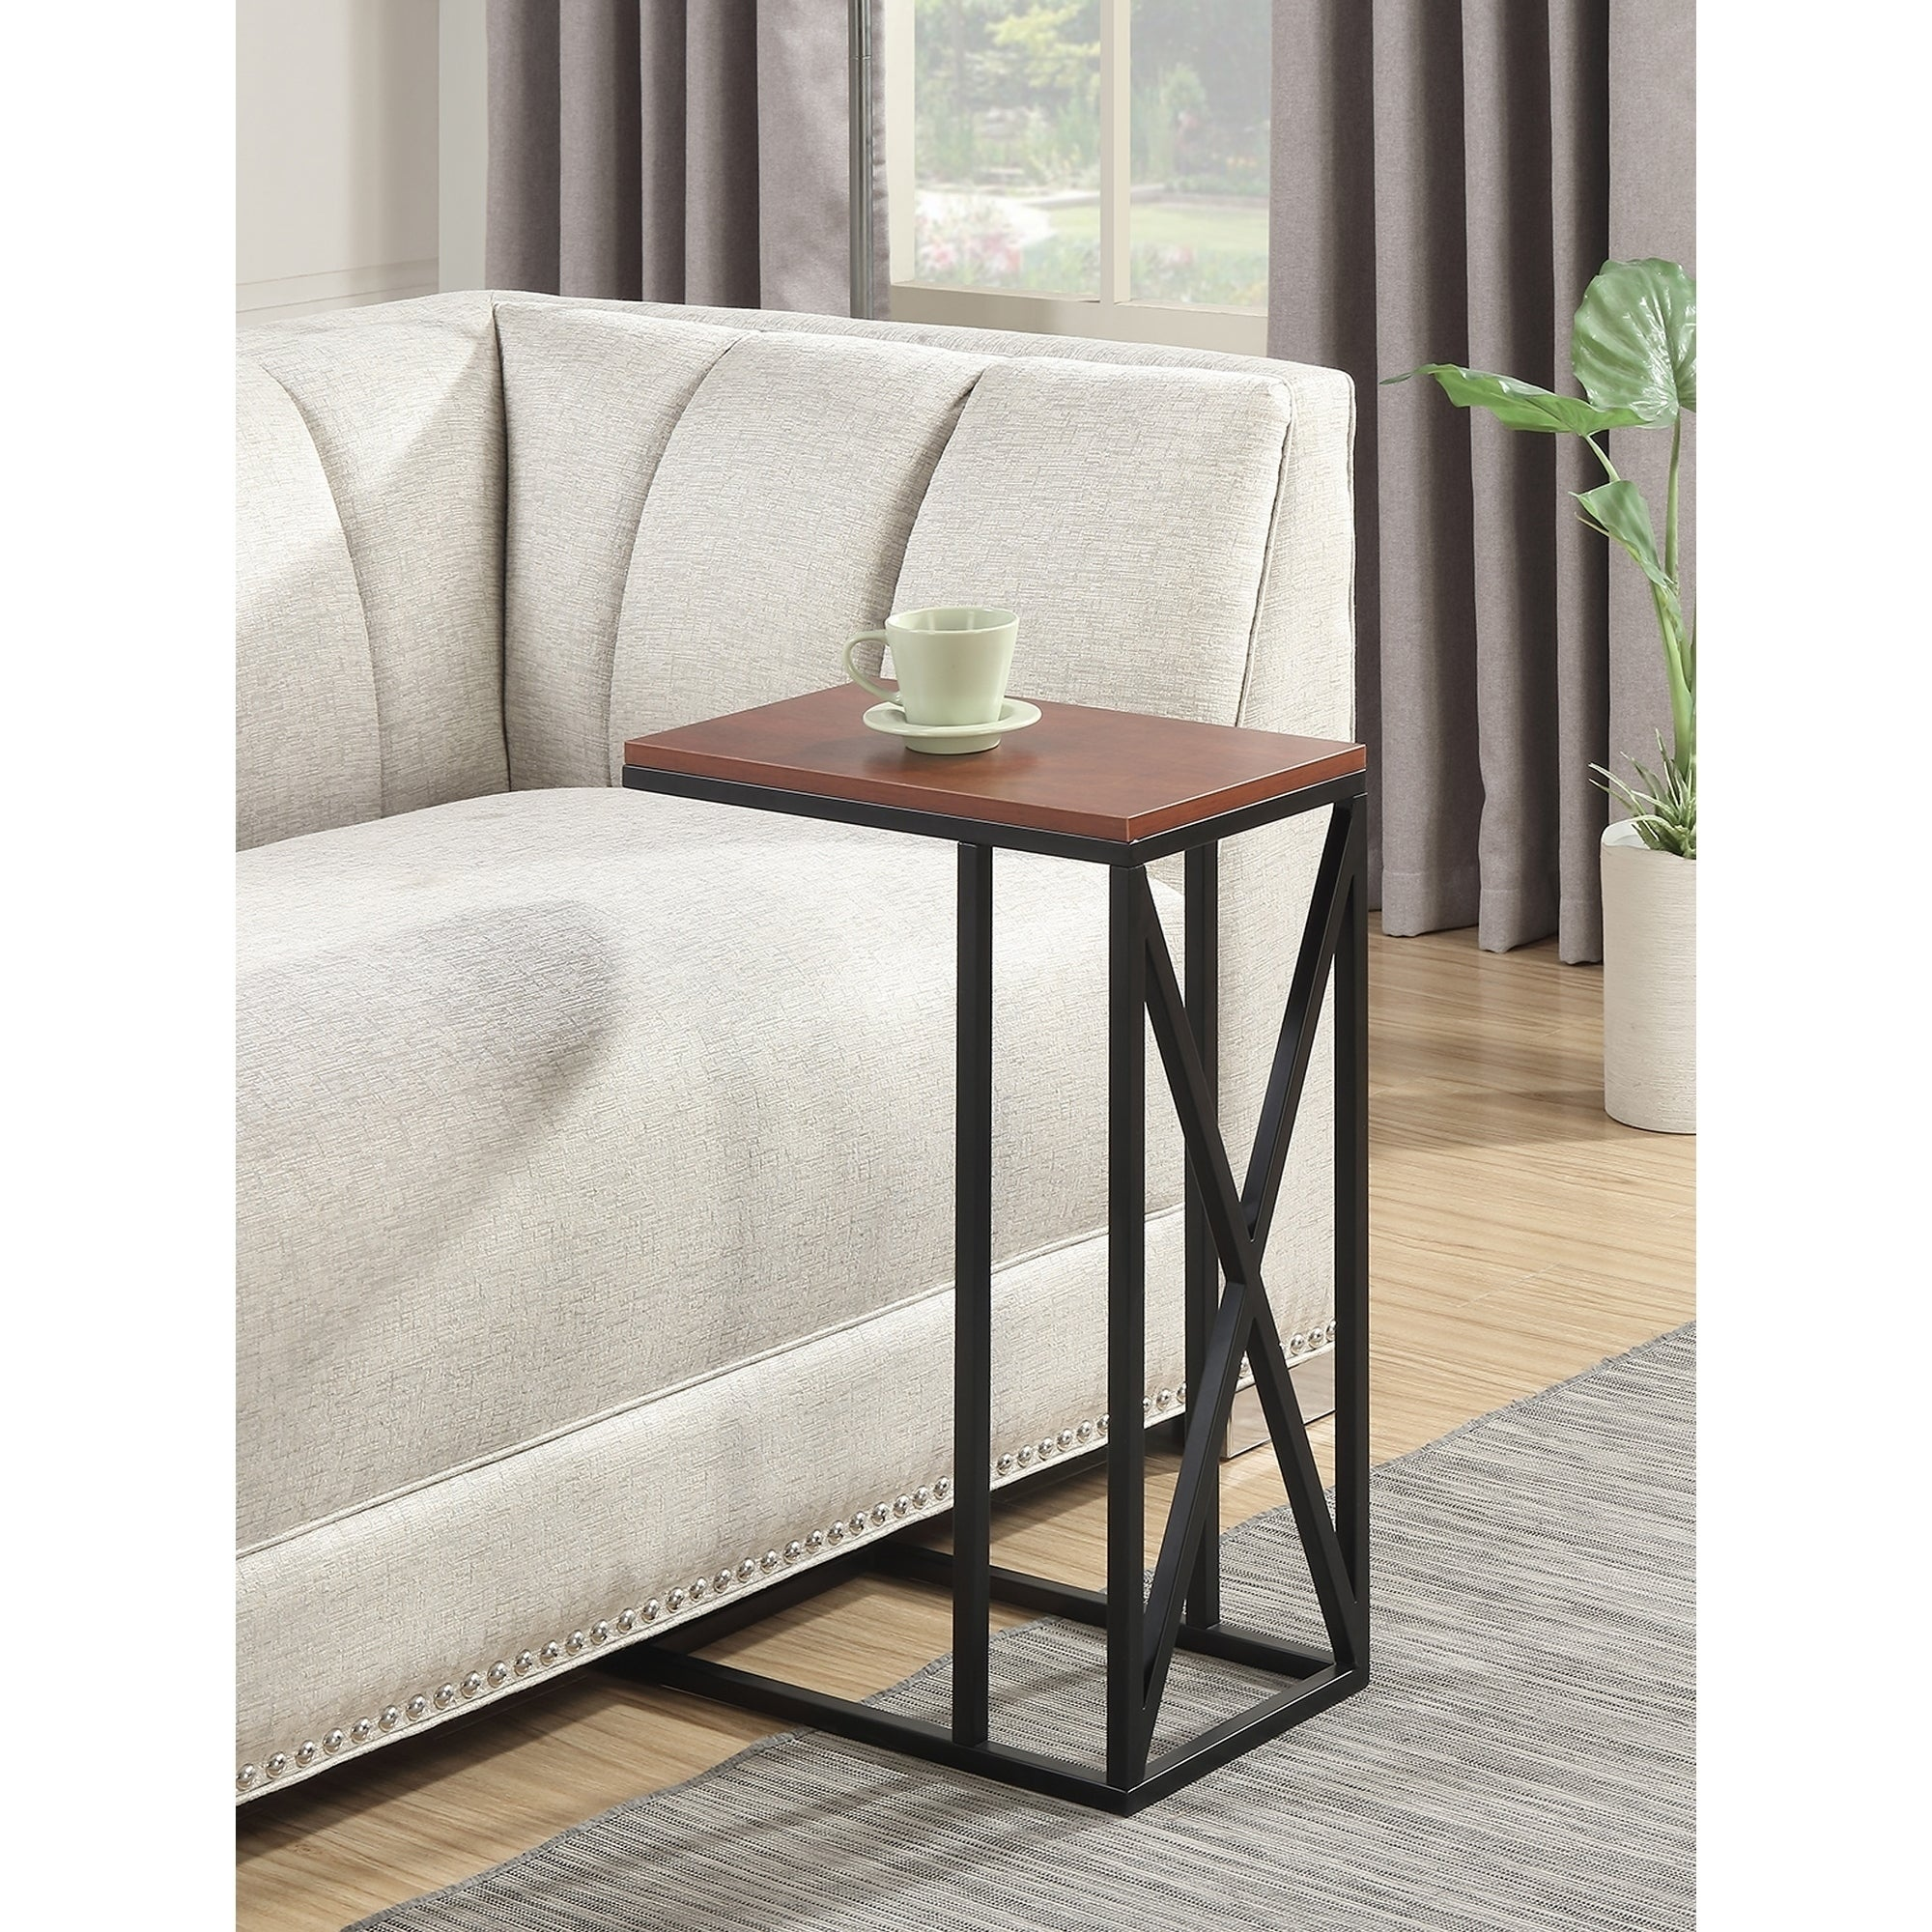 Shop Convenience Concepts Tucson C End Table Free Shipping On